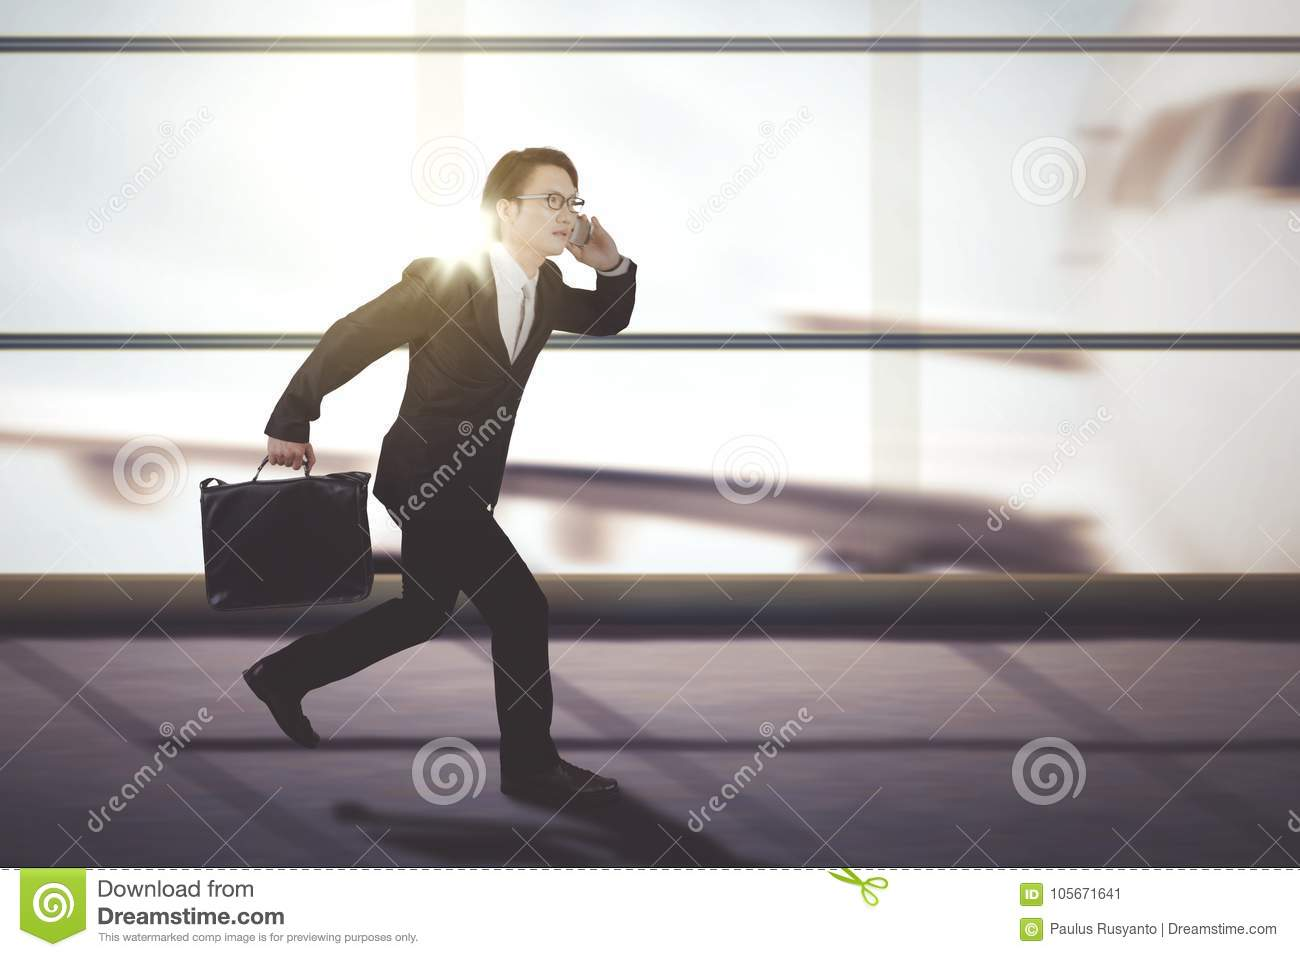 Male manager running on the airport terminal